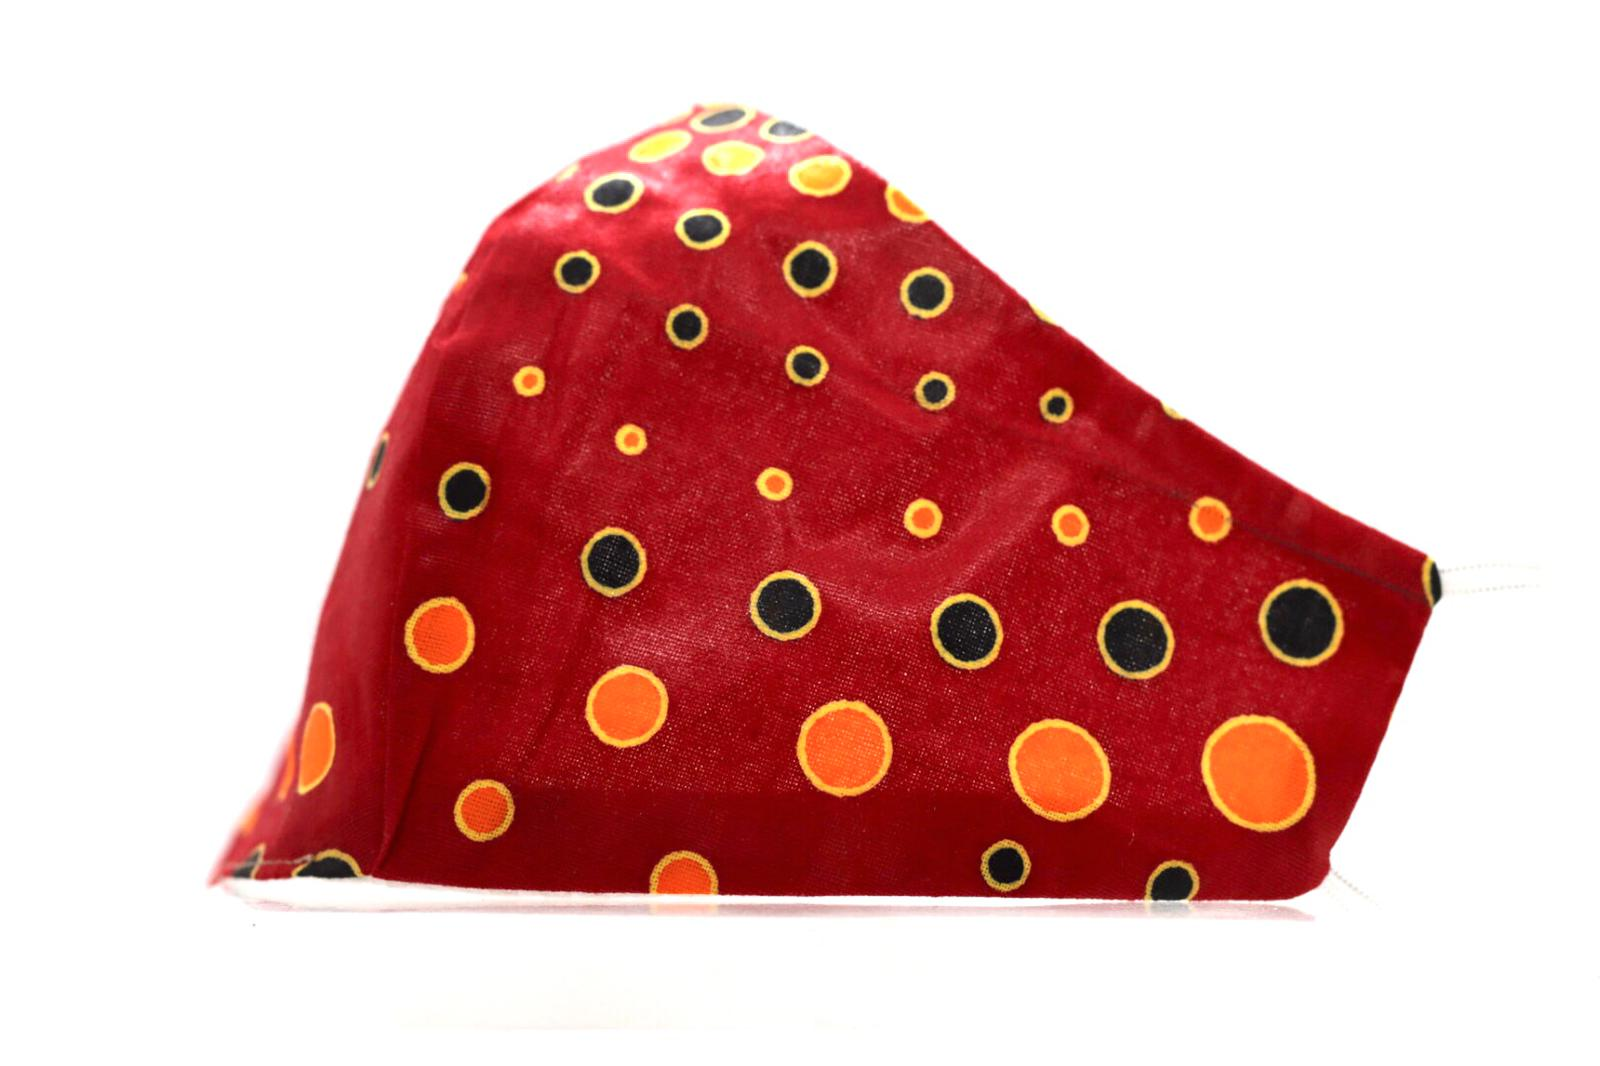 Printed Pepper Red, Yellow circular Mask Kind Shop 2